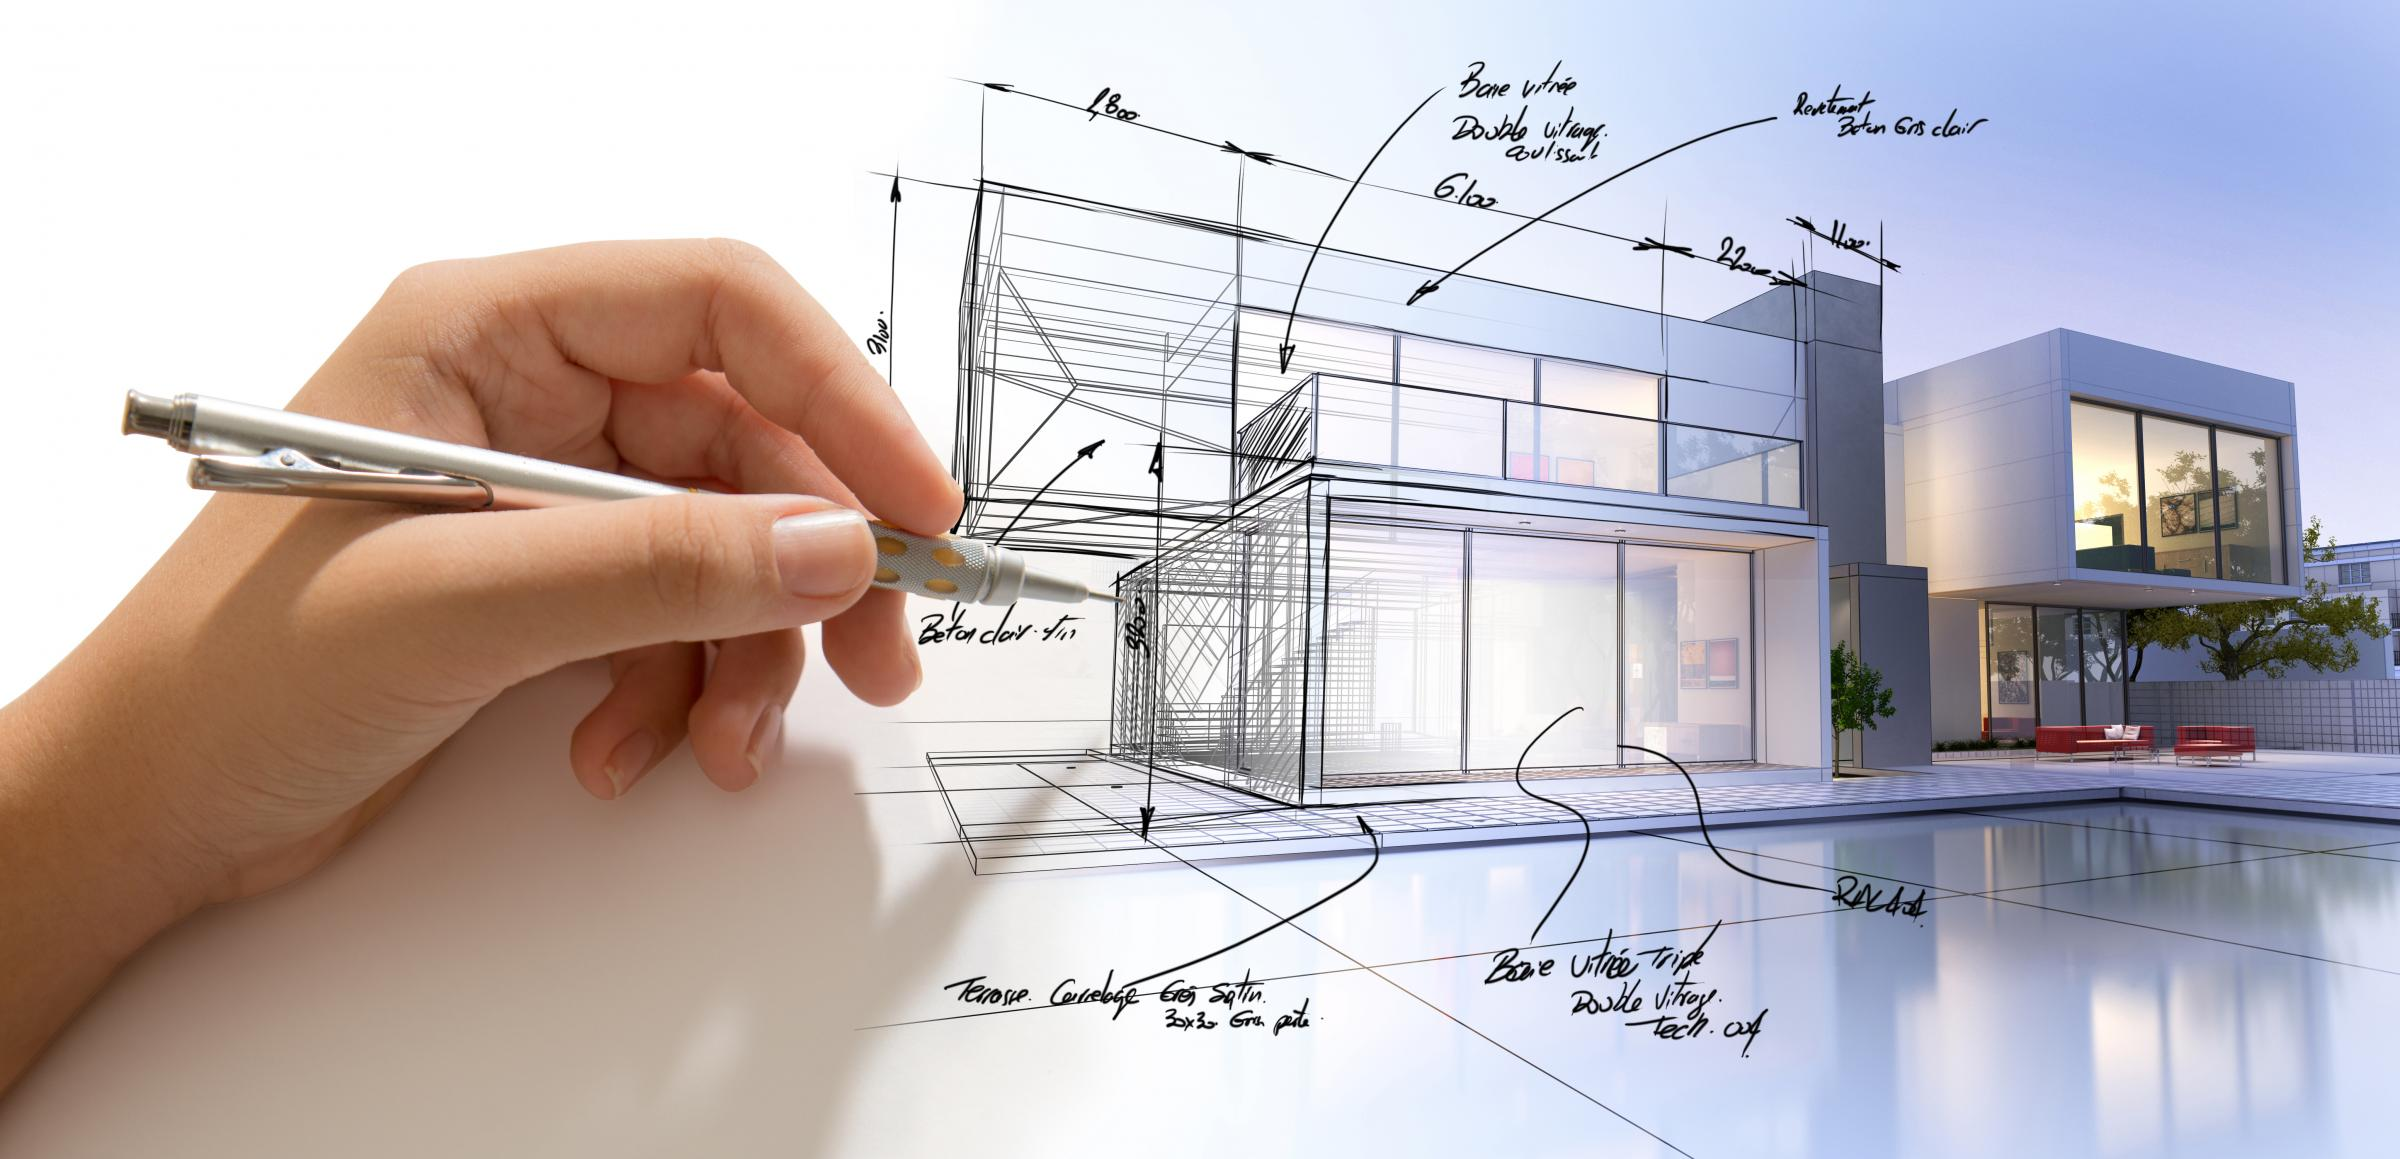 Planning applications and decisions